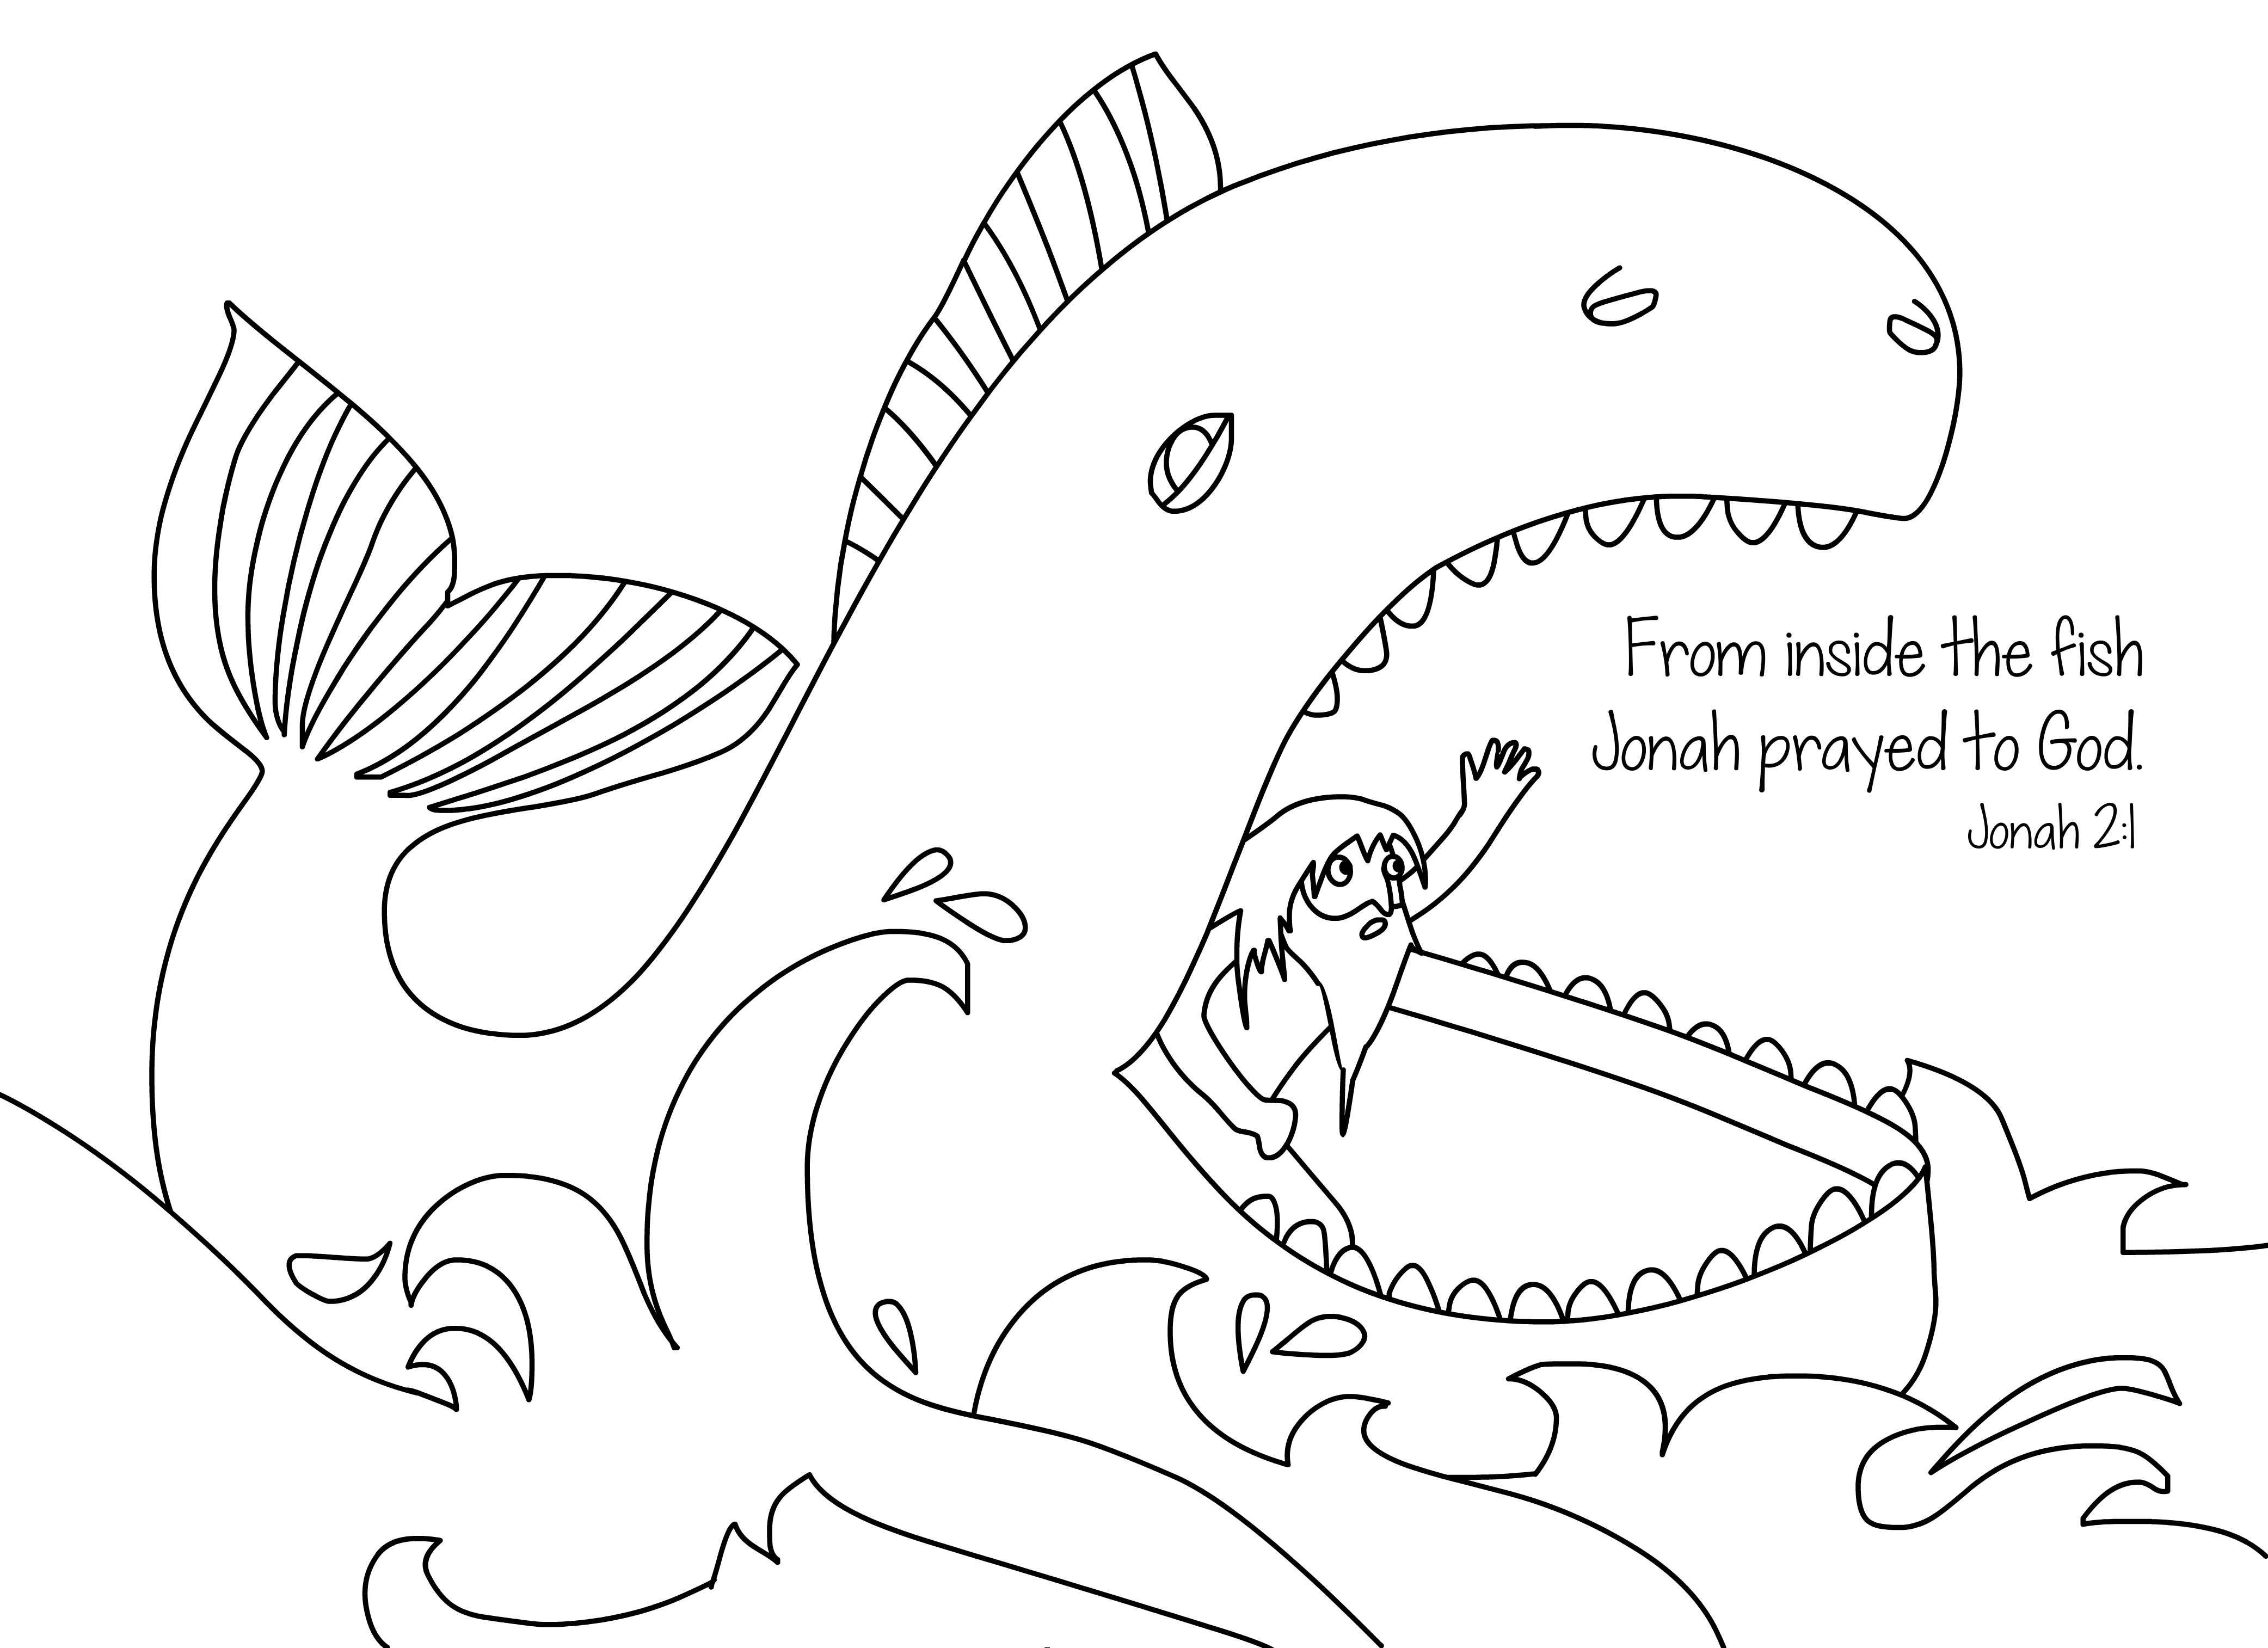 jonah the whale coloring pages jonah coloring pages and activities coloring pages whale pages jonah coloring the